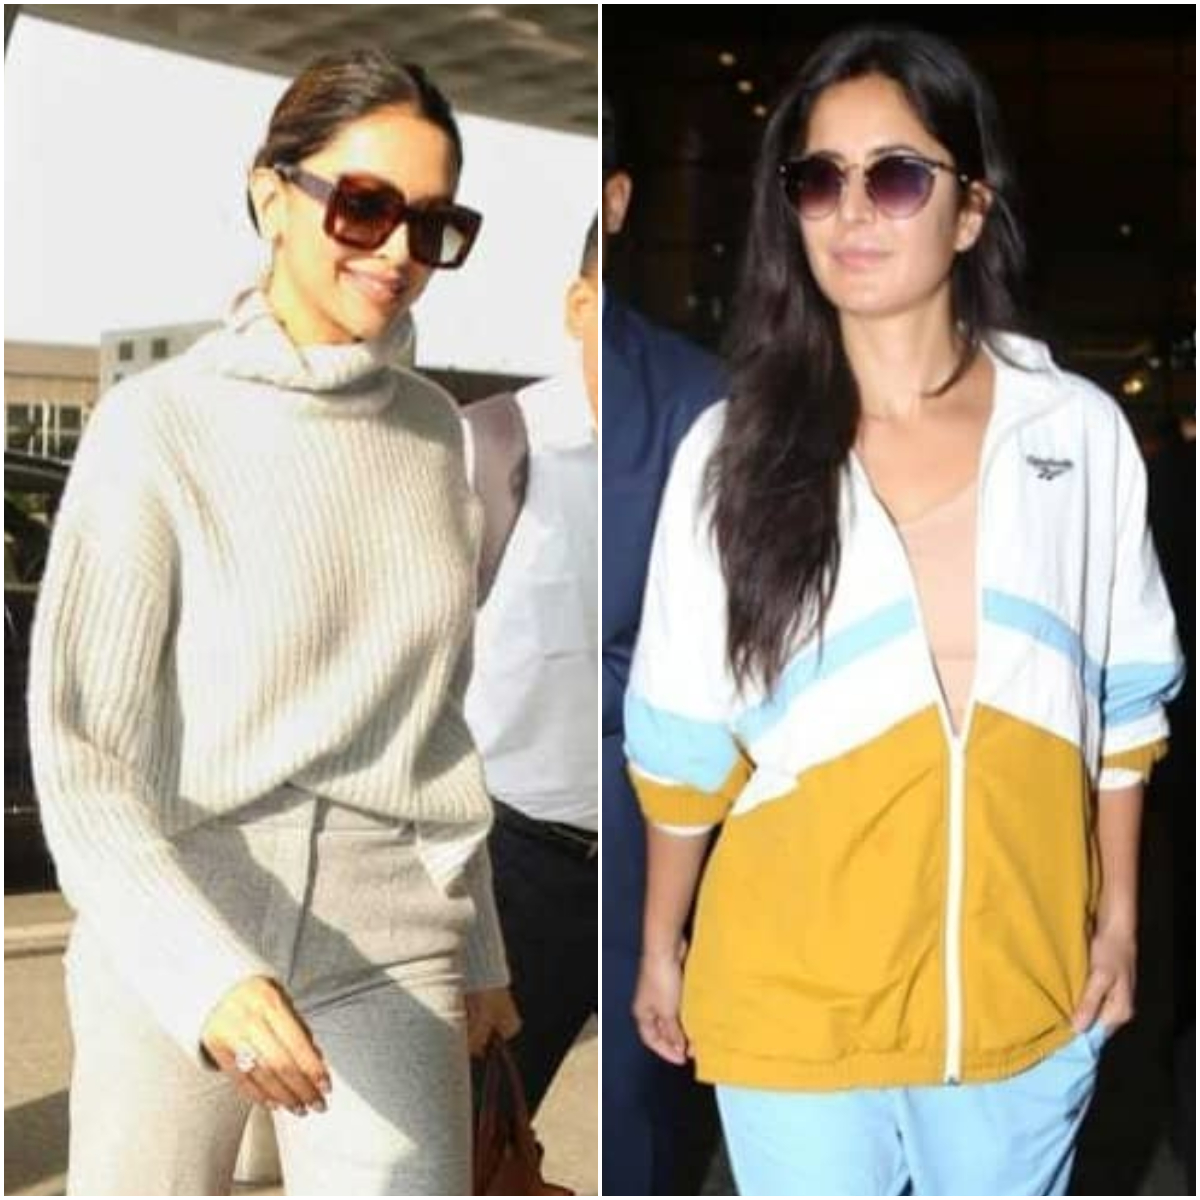 Latest sunglass trends inspired by celebrities you need to keep up with to look stylish like an A lister